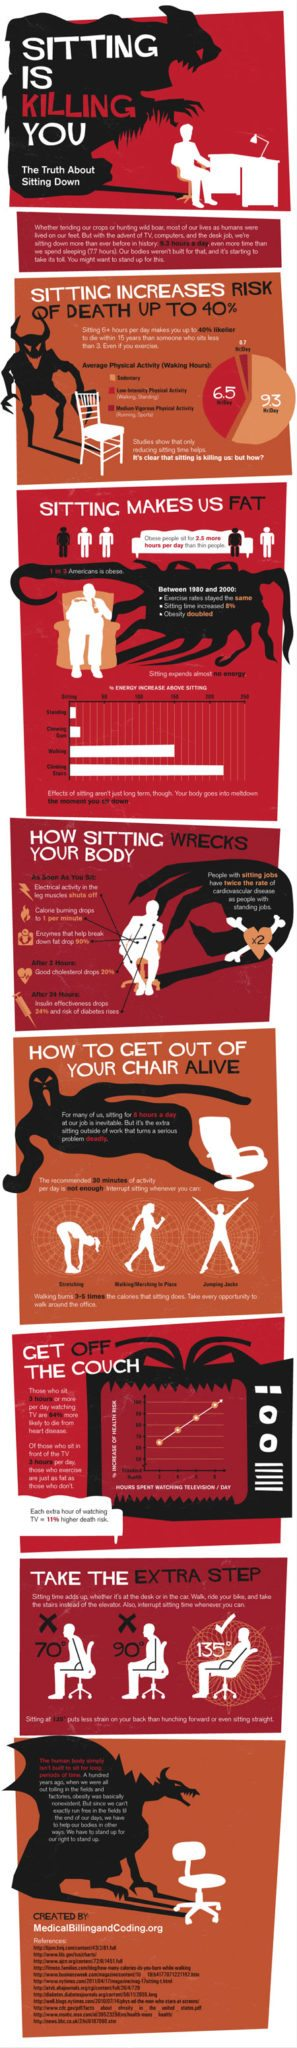 Too Much Sitting is Real Bad [infographic] 1